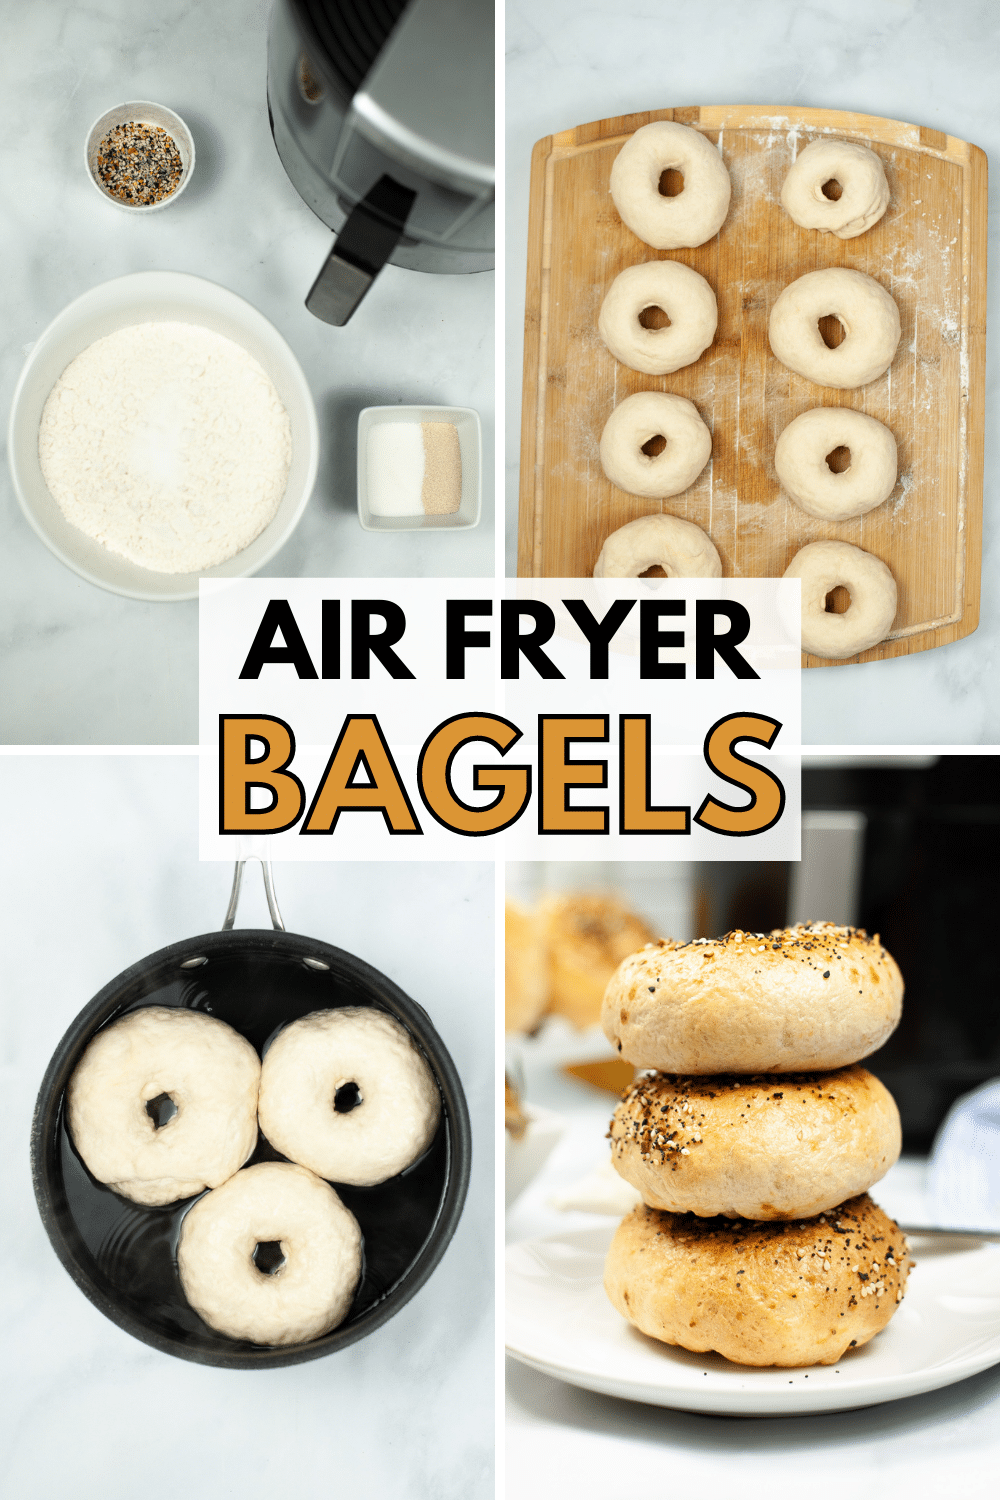 These Air Fryer Bagels are easy to make and come out dense and chewy on the inside with the perfect golden, crispy outside. #airfryer #bagels #breakfast via @wondermomwannab